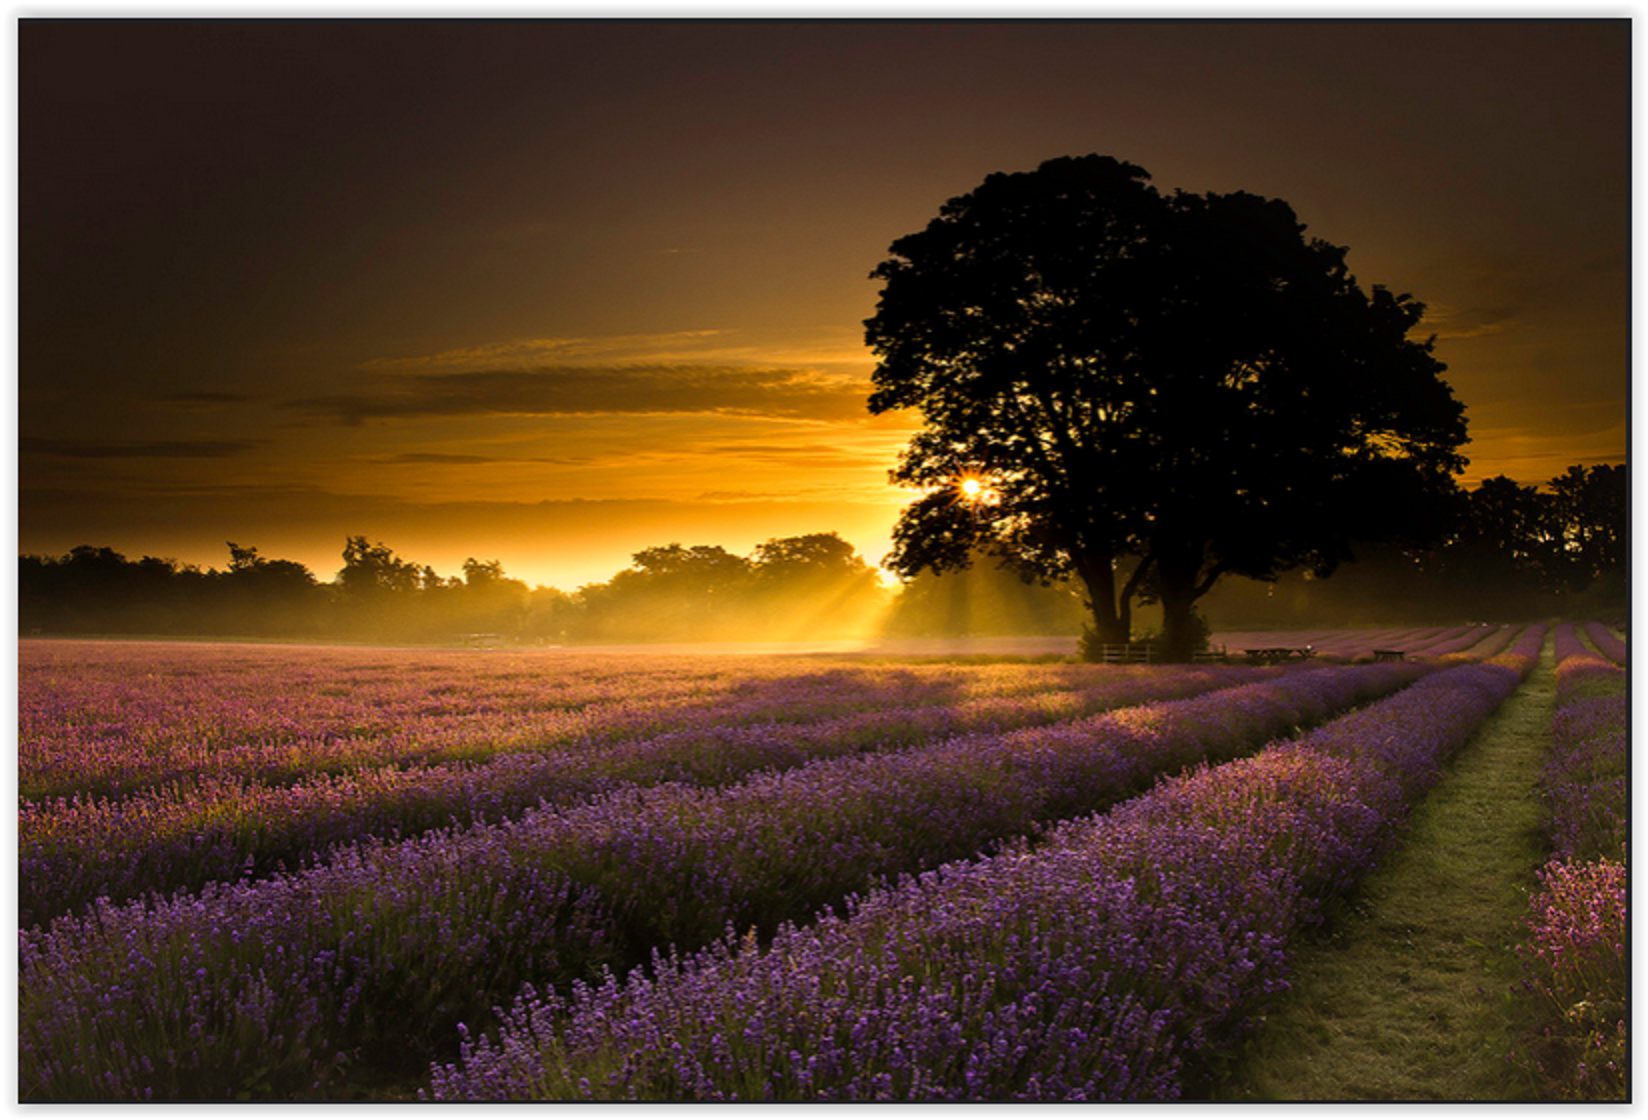 Mayfair Lavender First Light - Taken after spending quite sometime trying to locate a lavender field with something a little different. First time to the location and so lucky to have the early morning mist and perfect morning sky. Looking forward to another visit once the seasons change.